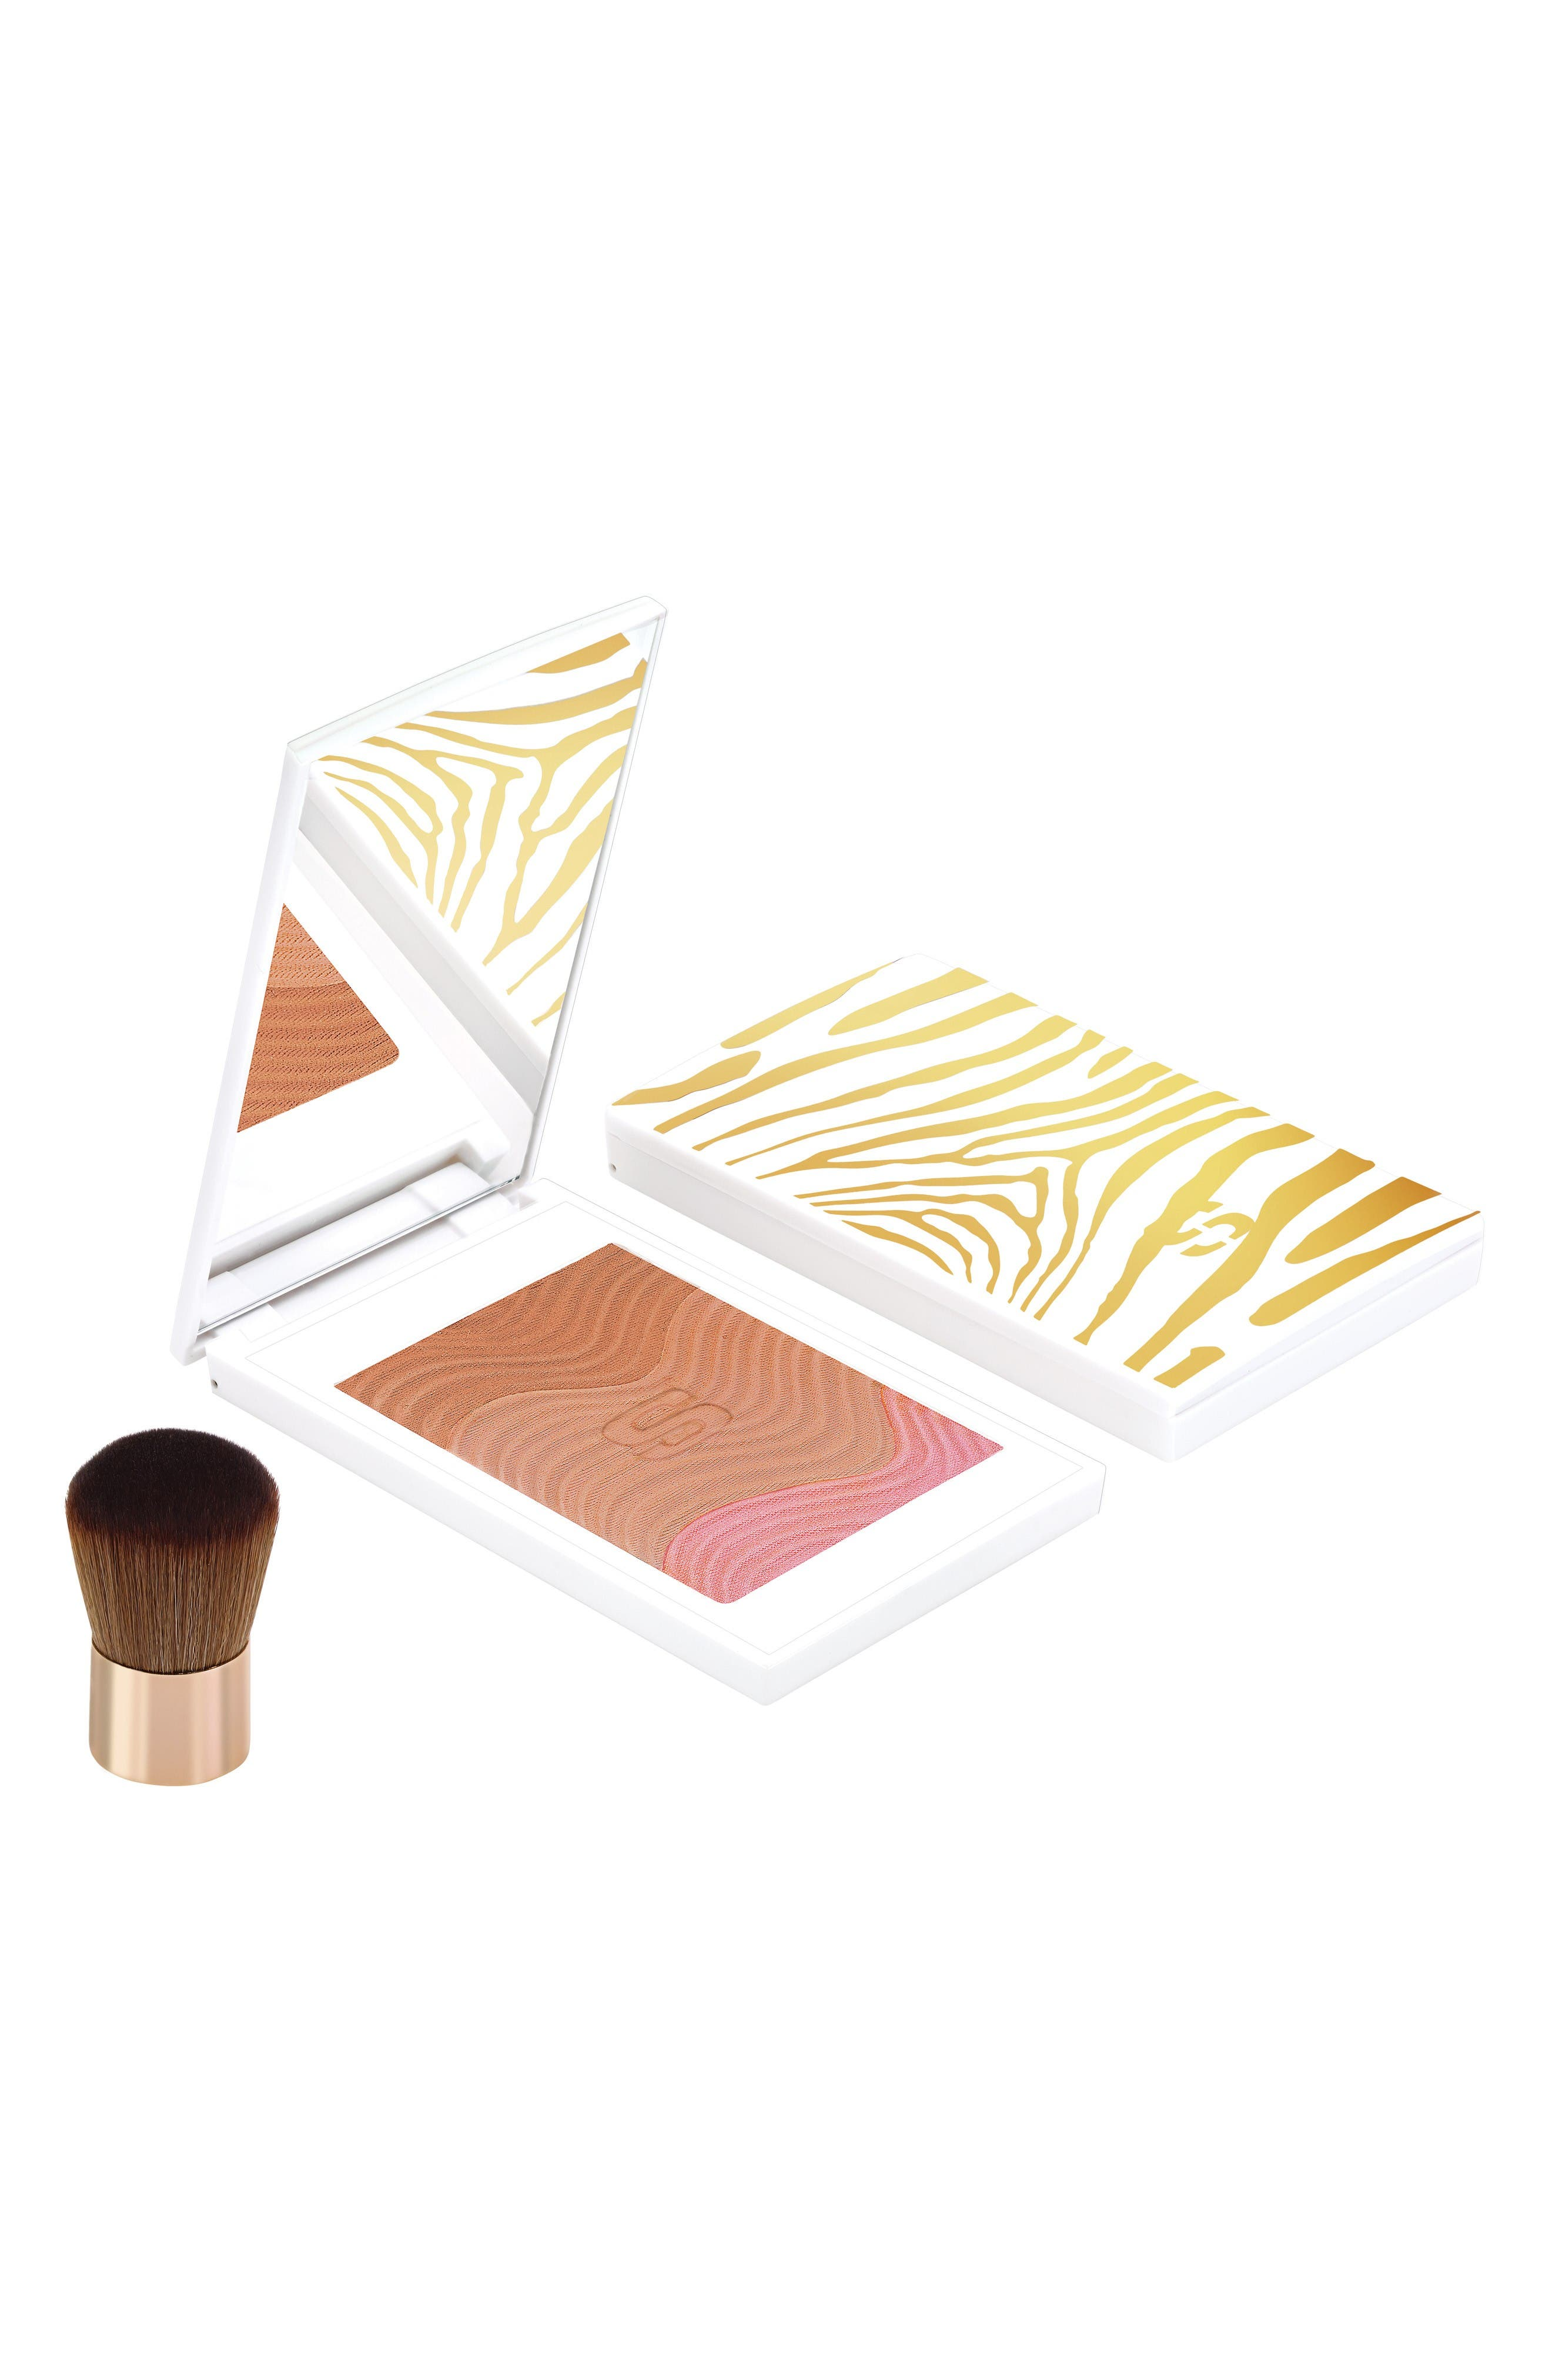 Main Image - Sisley Paris Phyto-Touche Sun Glow Powder